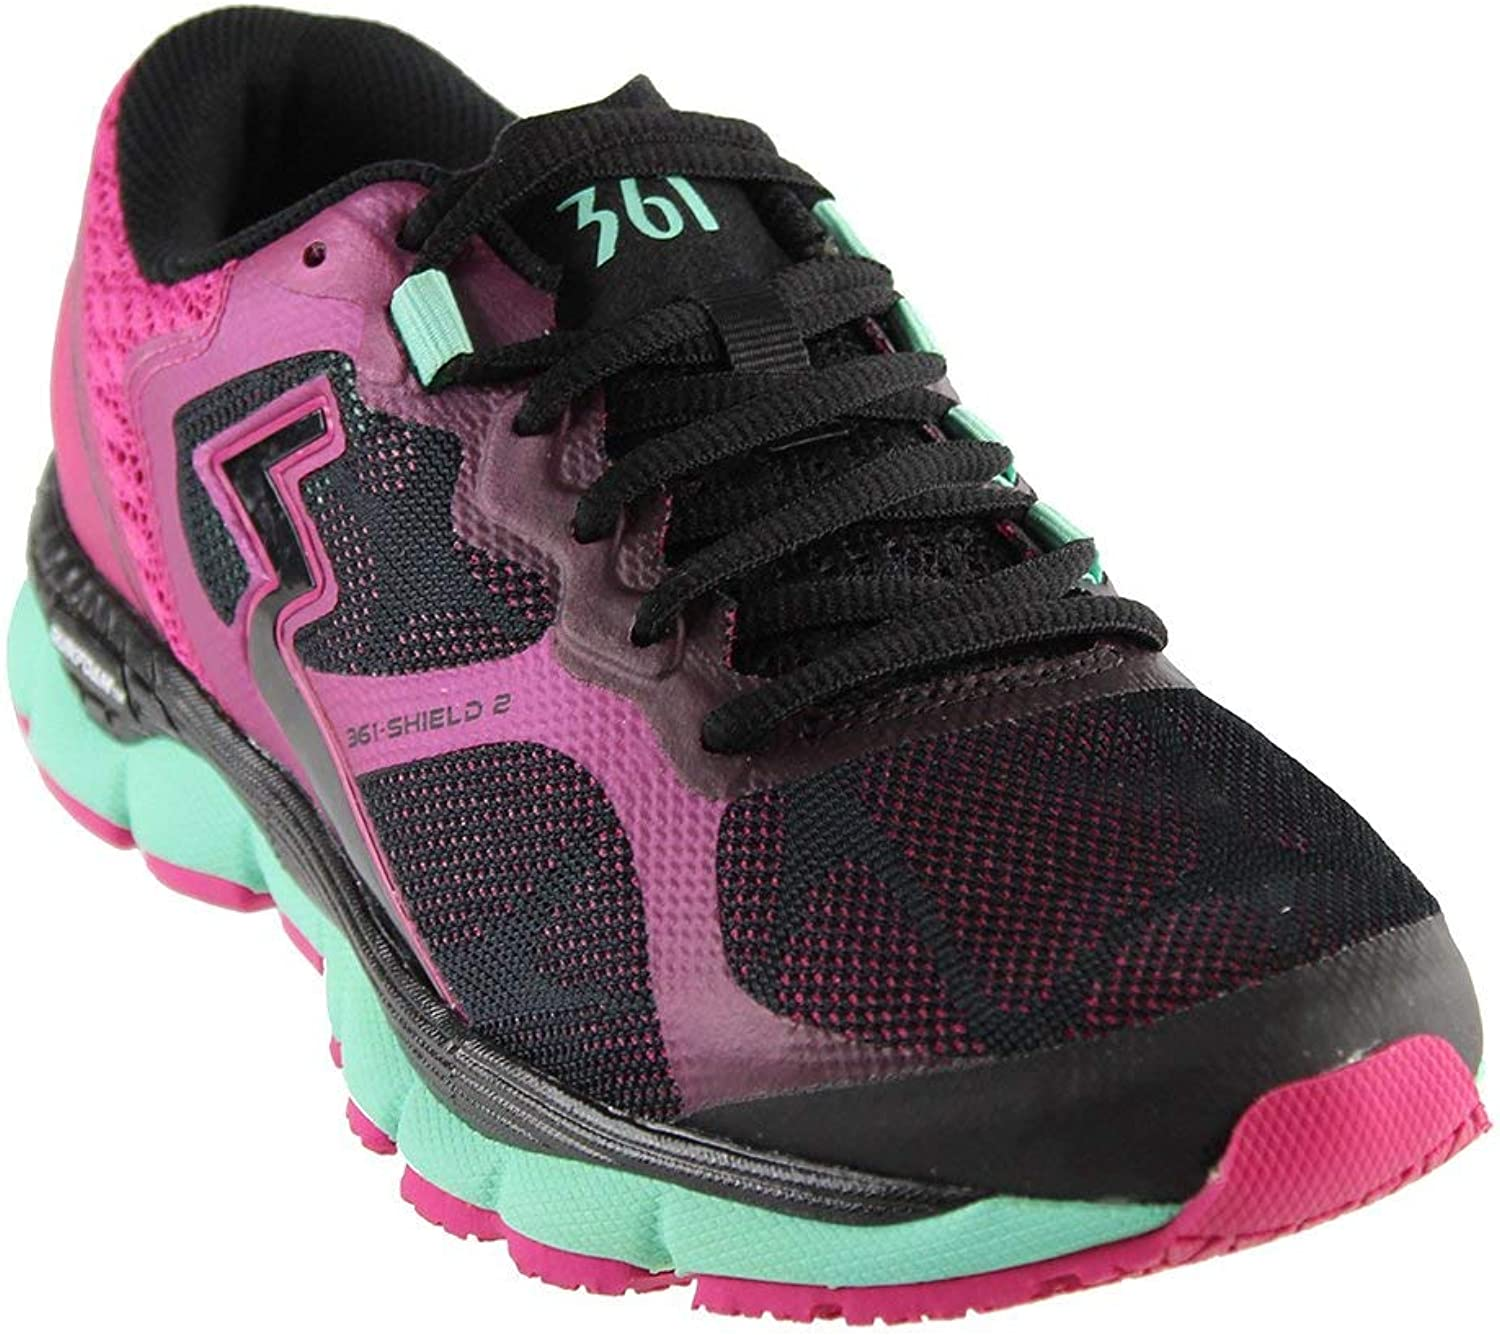 361°°°°°°°° Women's Shield 2 Running shoes Black